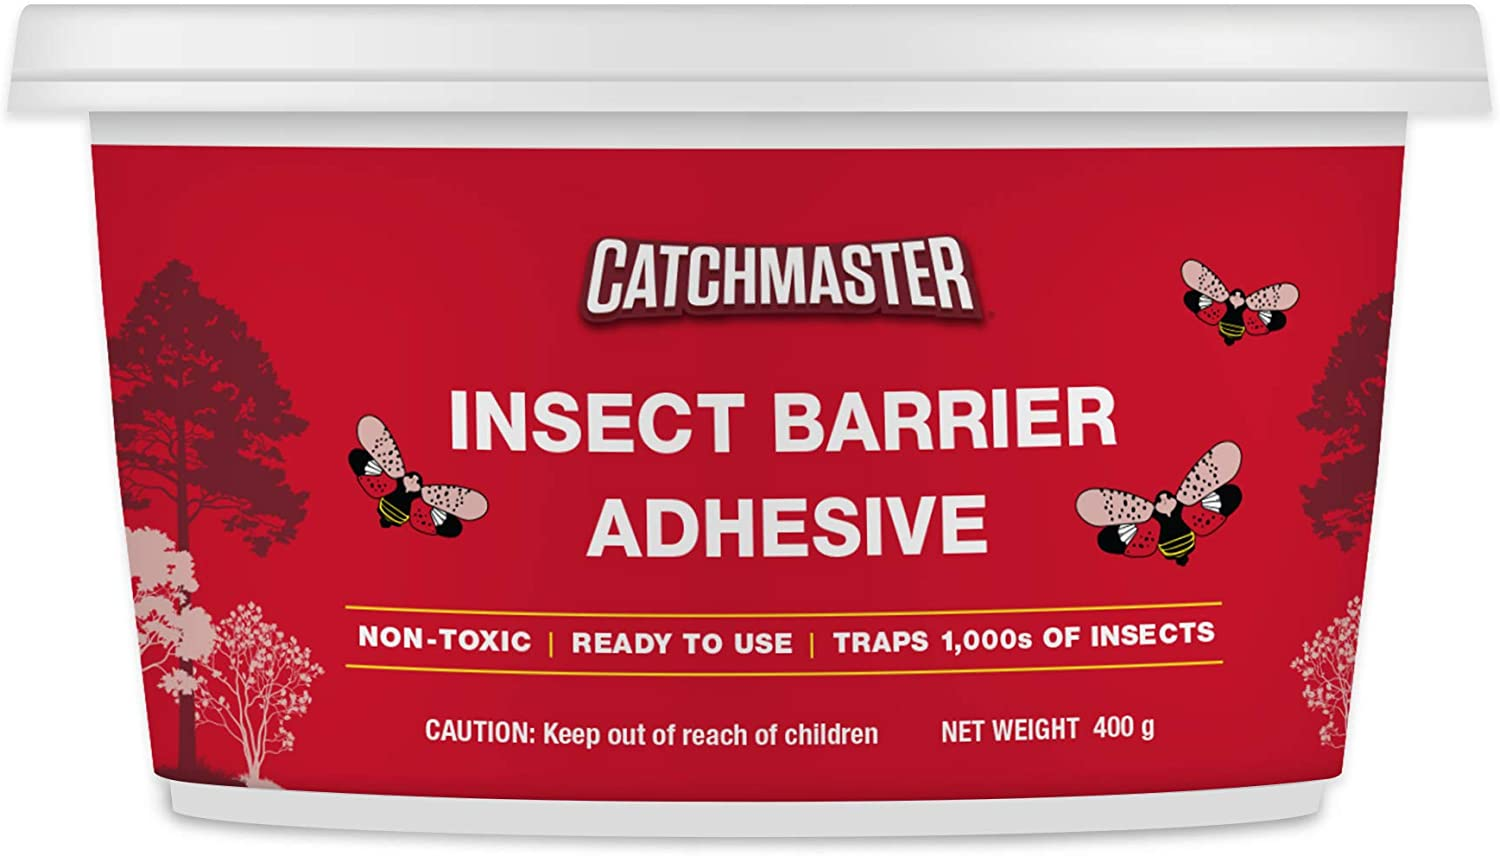 Catchmaster Tree Banding Insect Adhesive Barrier - Protective Sticky Glue Trap - 15oz - 1 Tub